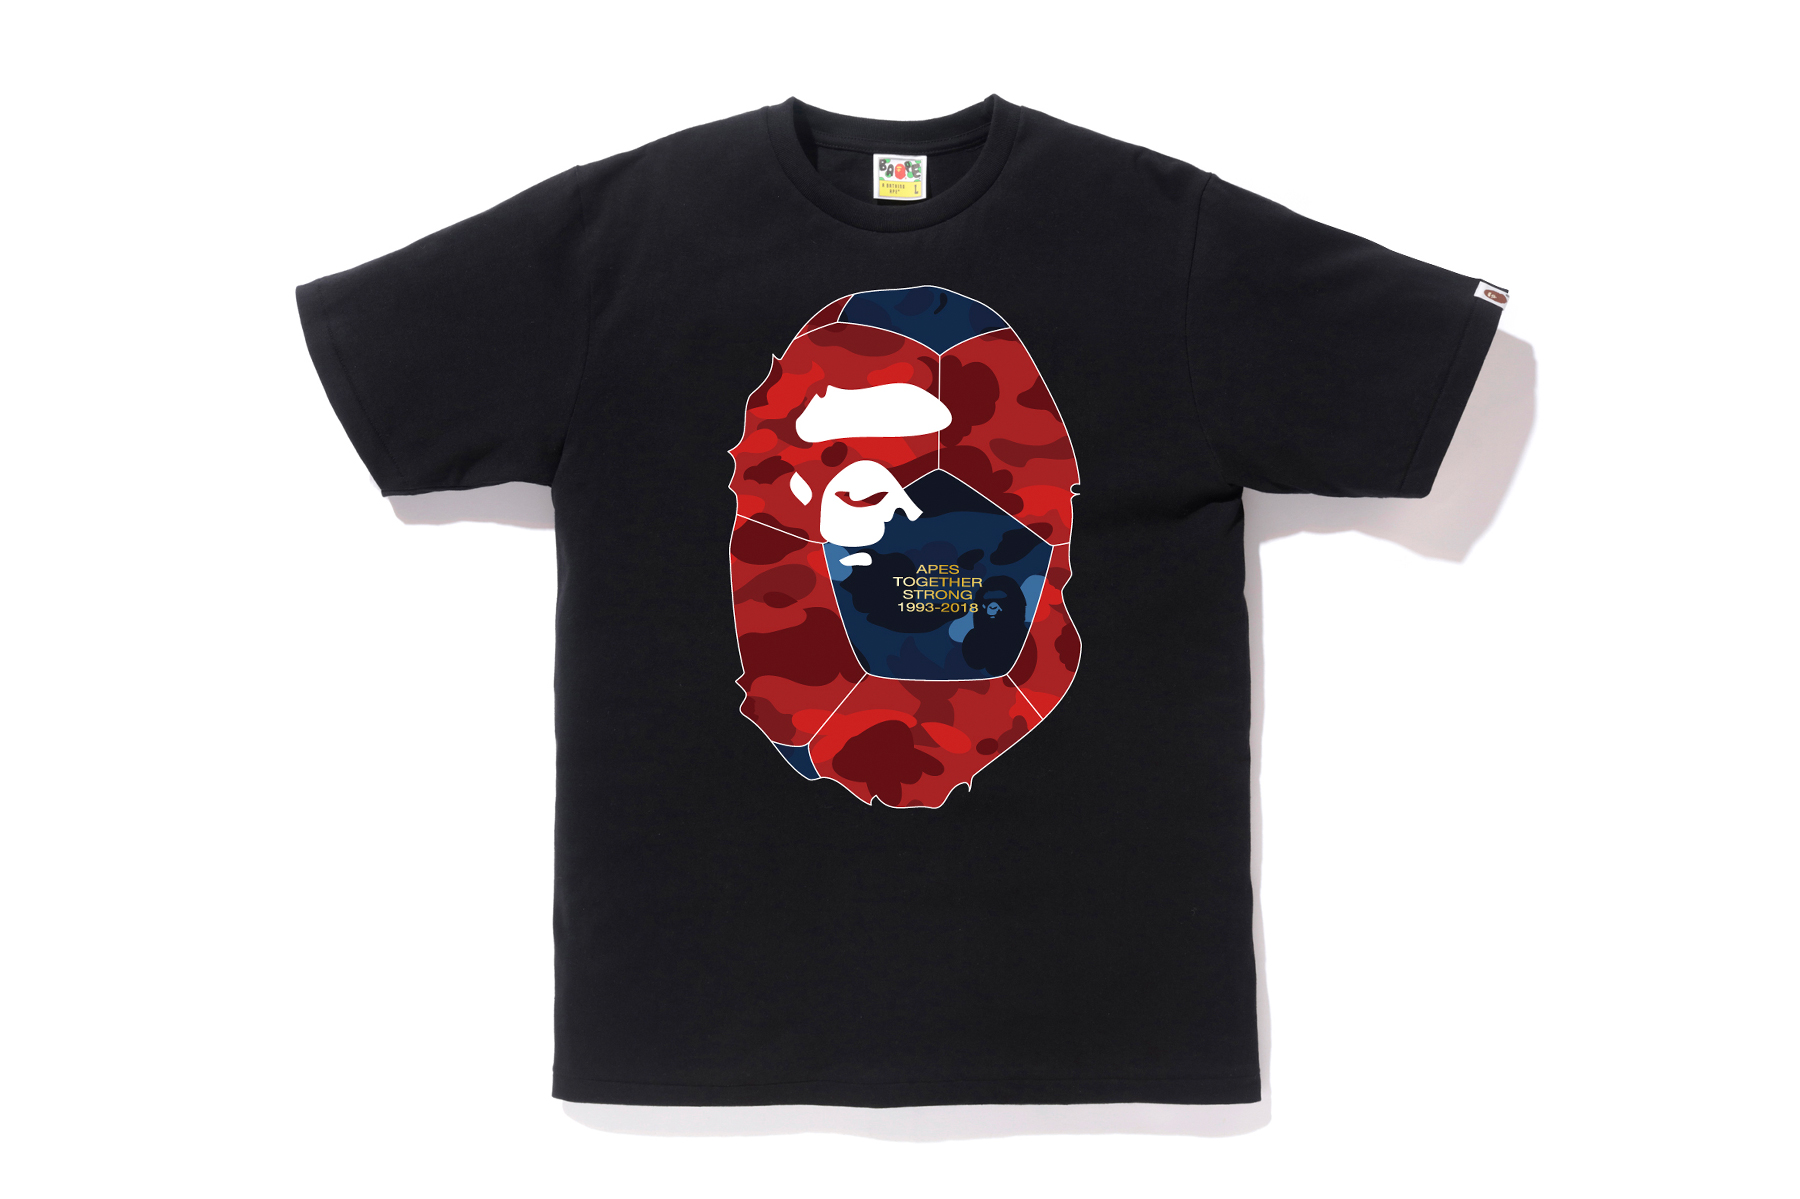 BAPE 2018 Football Collection